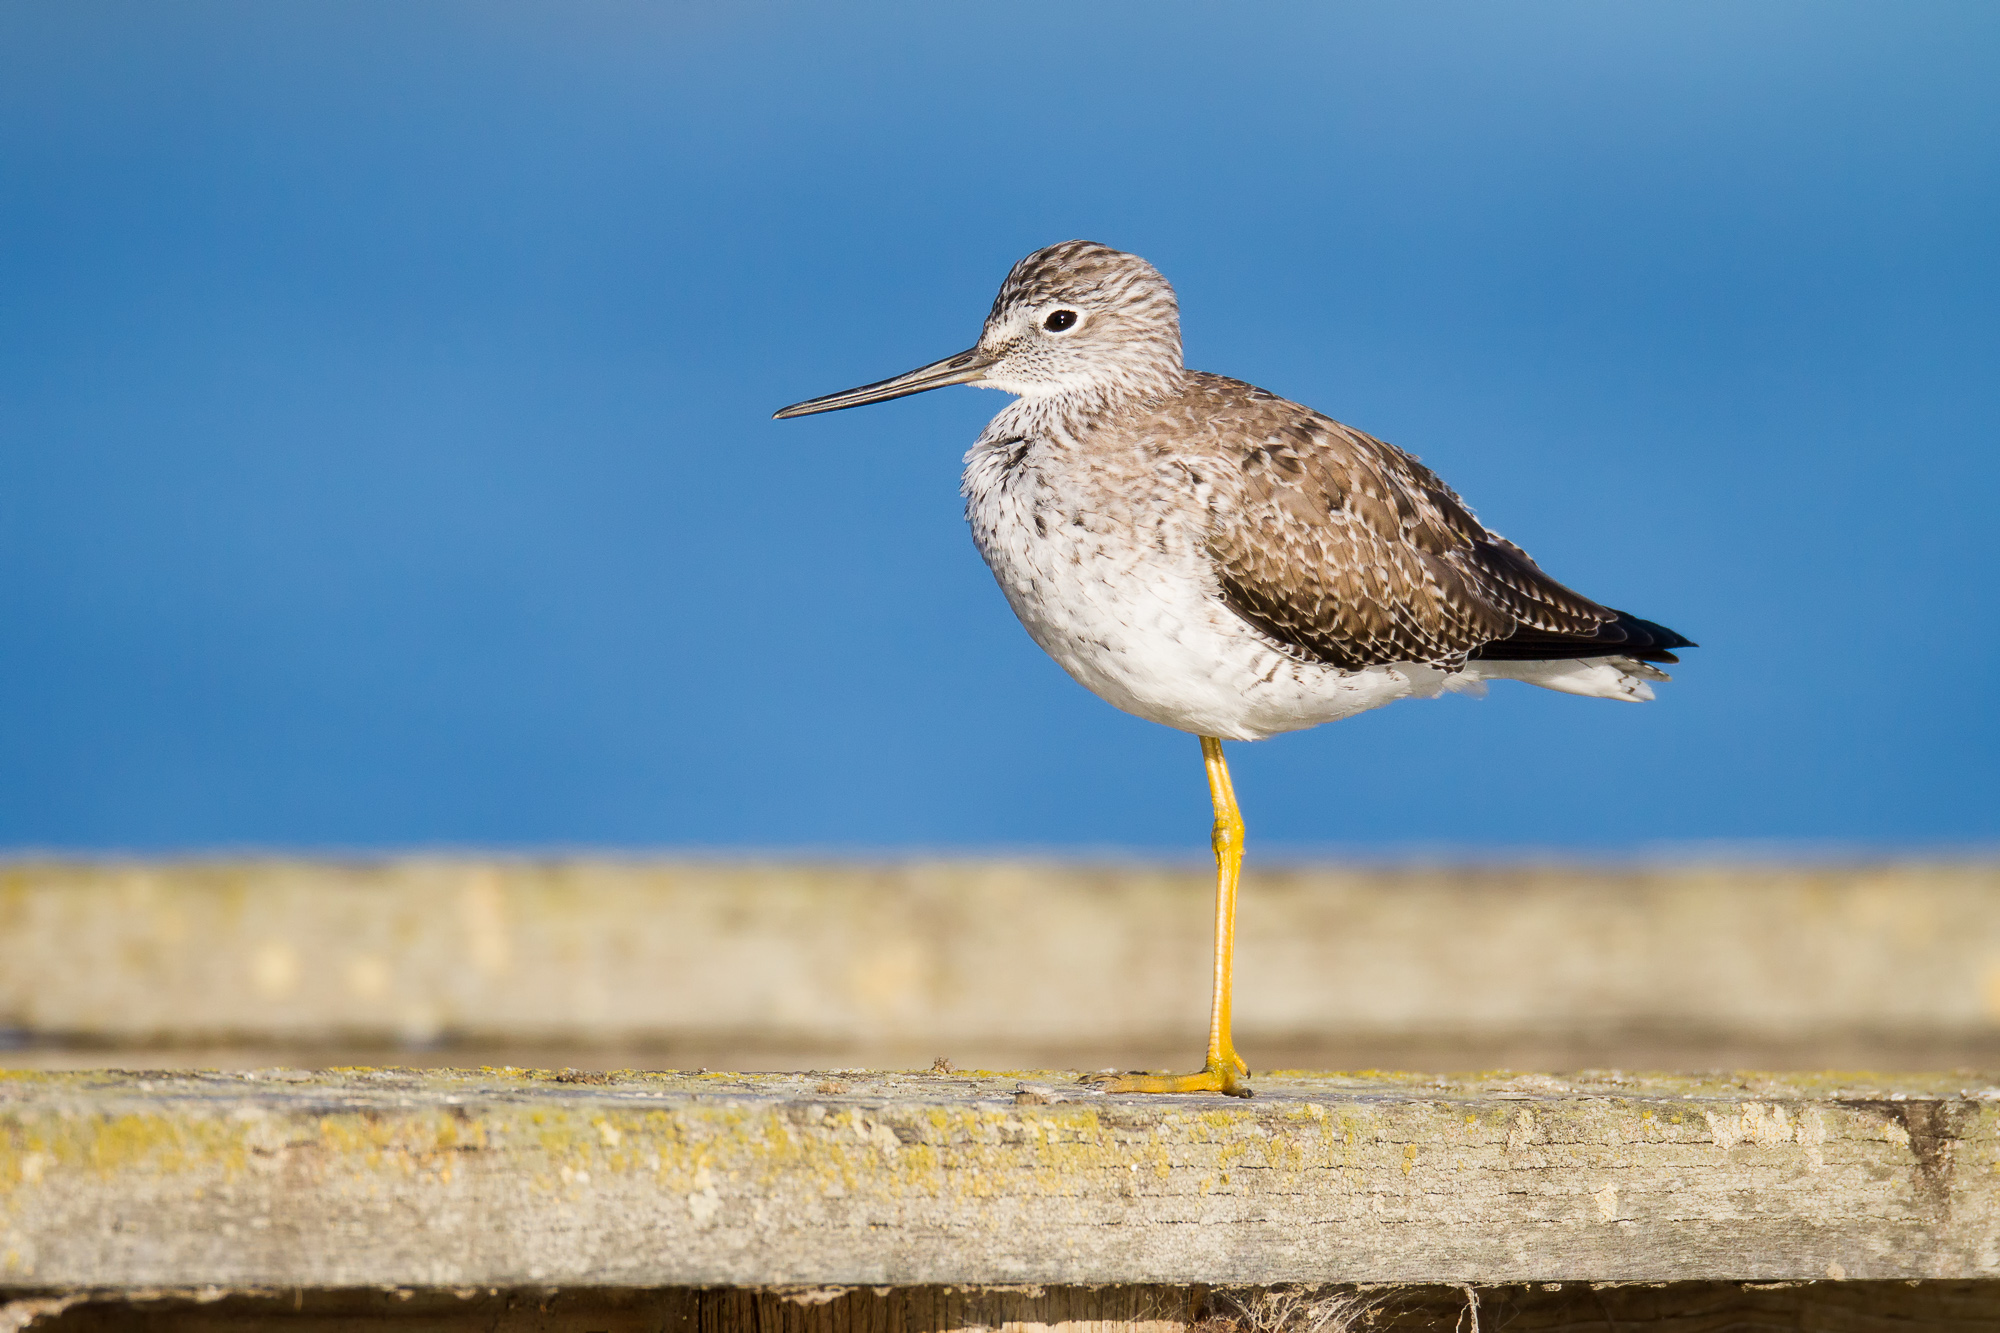 A greater yellowlegs stands on the railing of a dock.  The background color comes from a lake behind the dock.